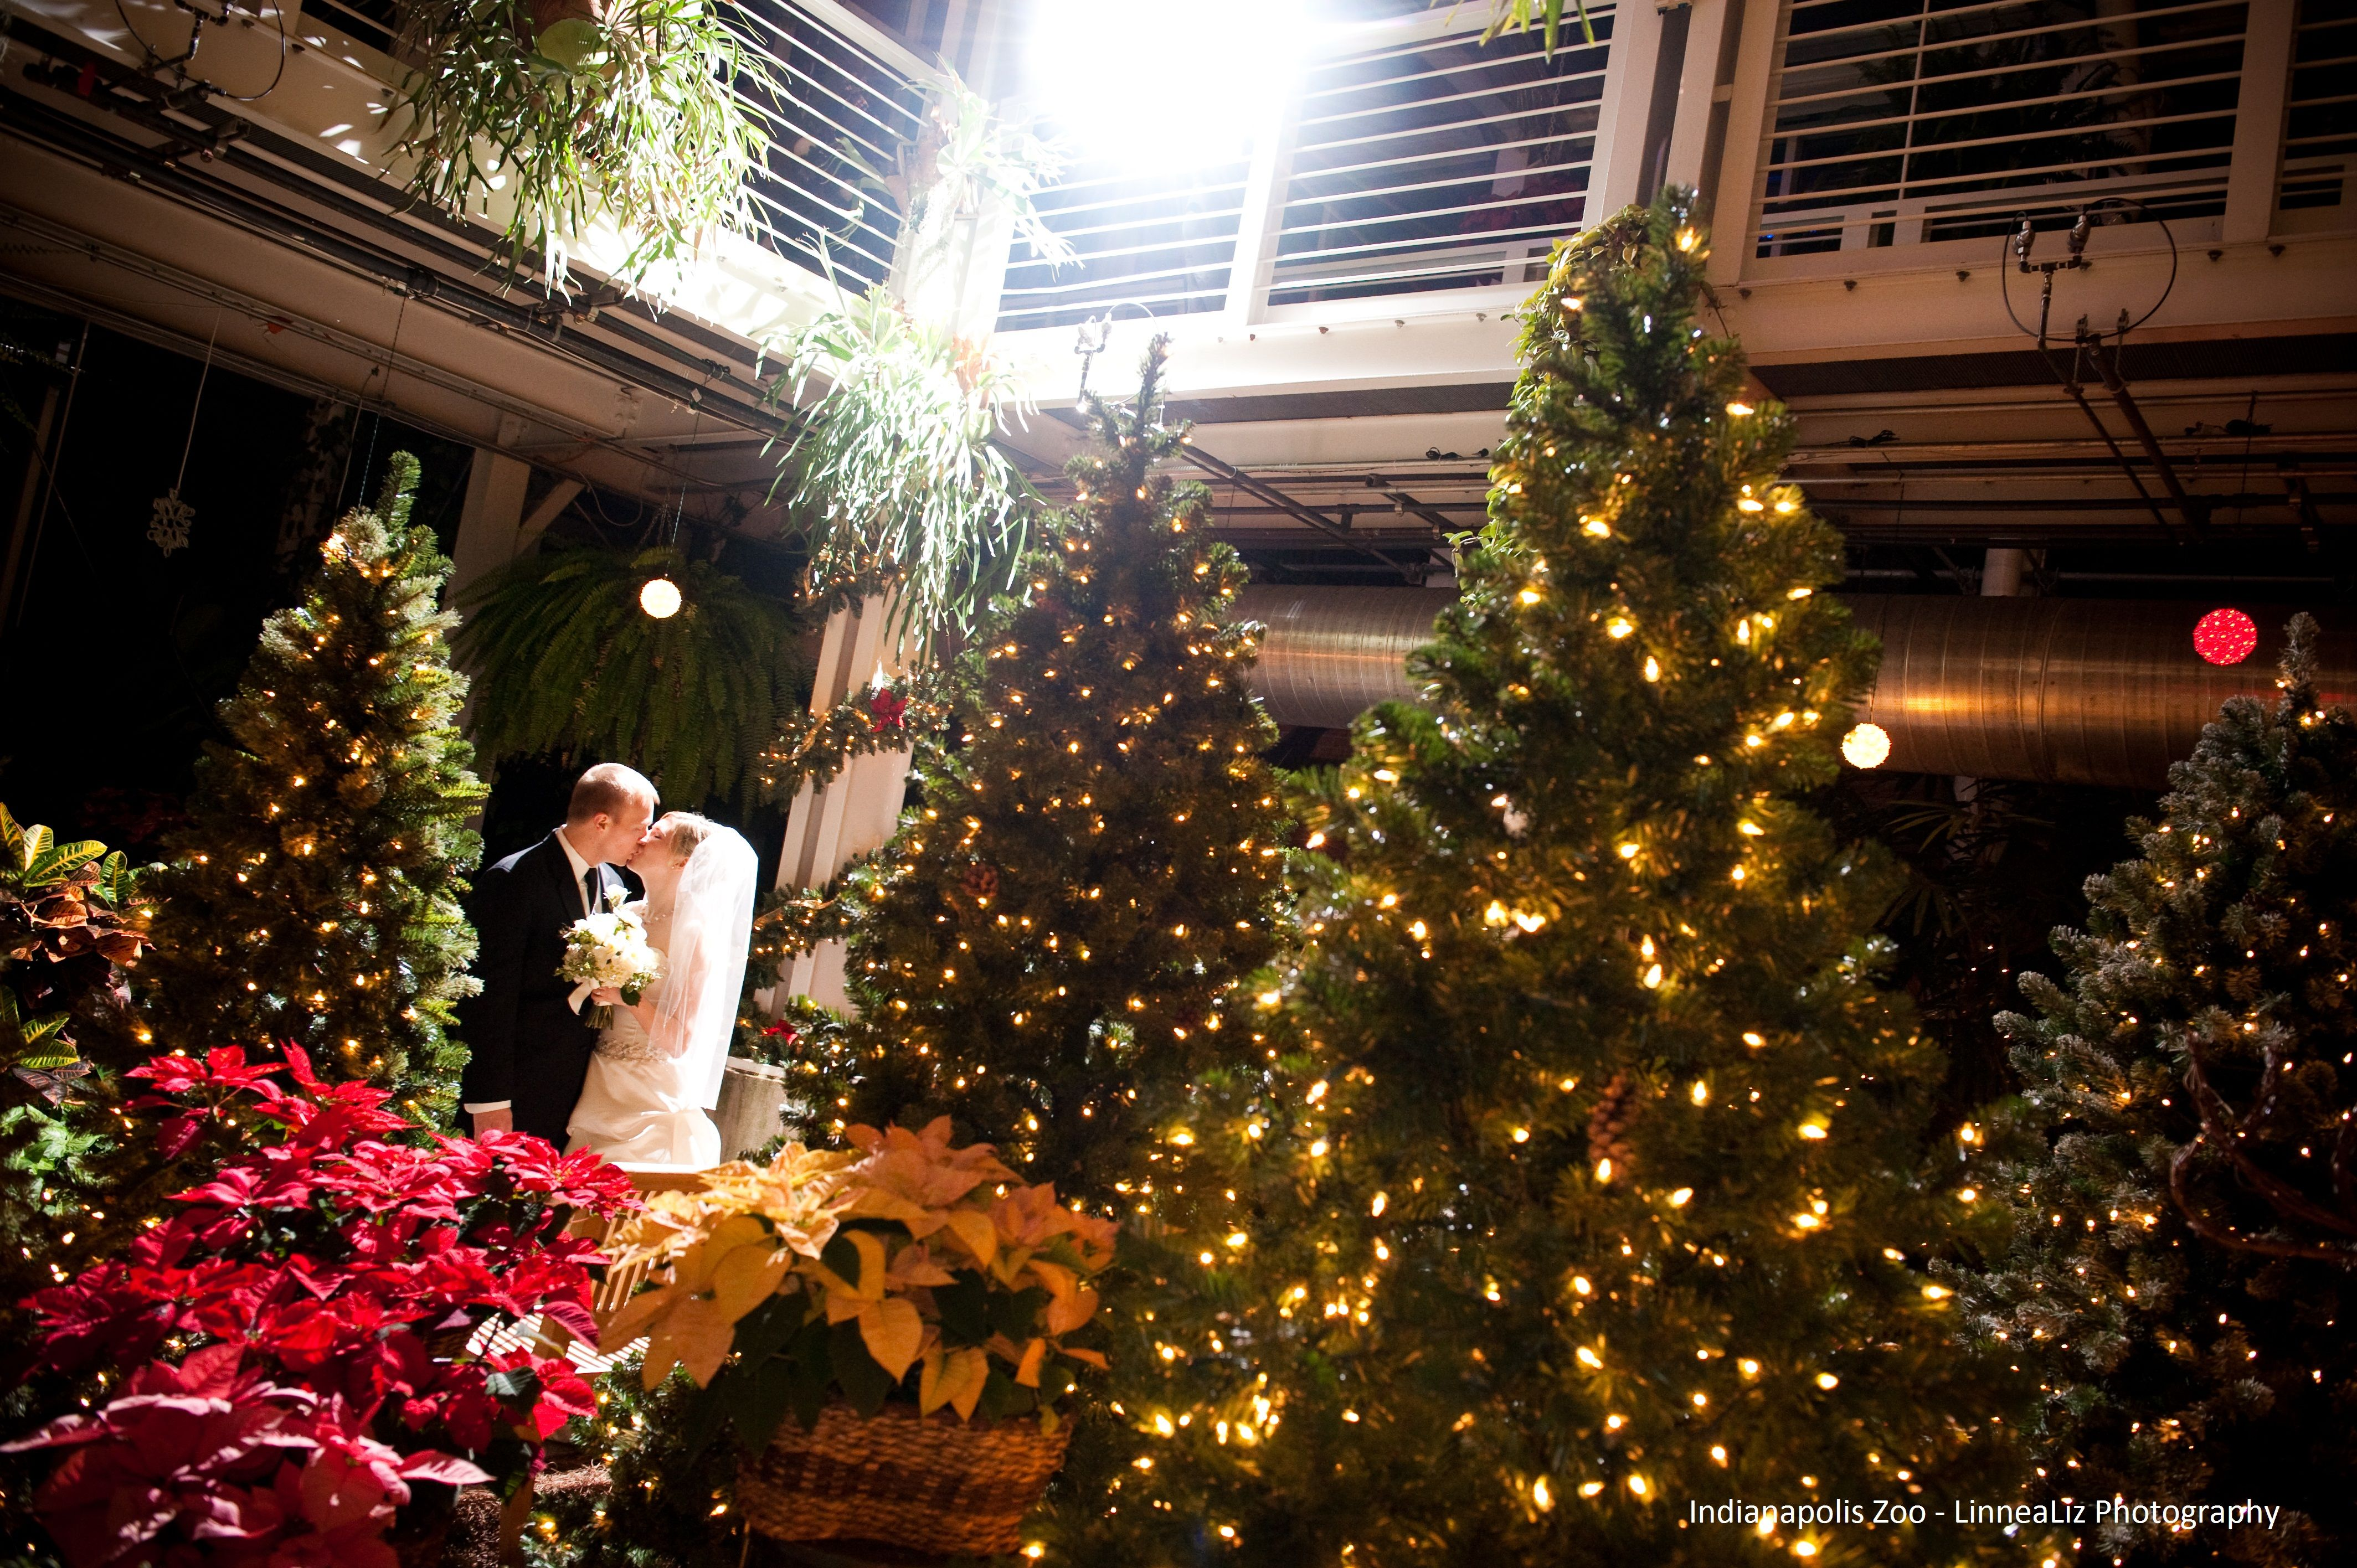 A Bride And Groom Sparkle Among The Glittery Christmas Lights In The Hilbert Conservatory At The Indianap Christmas Lights Indianapolis Zoo Perfect Destination